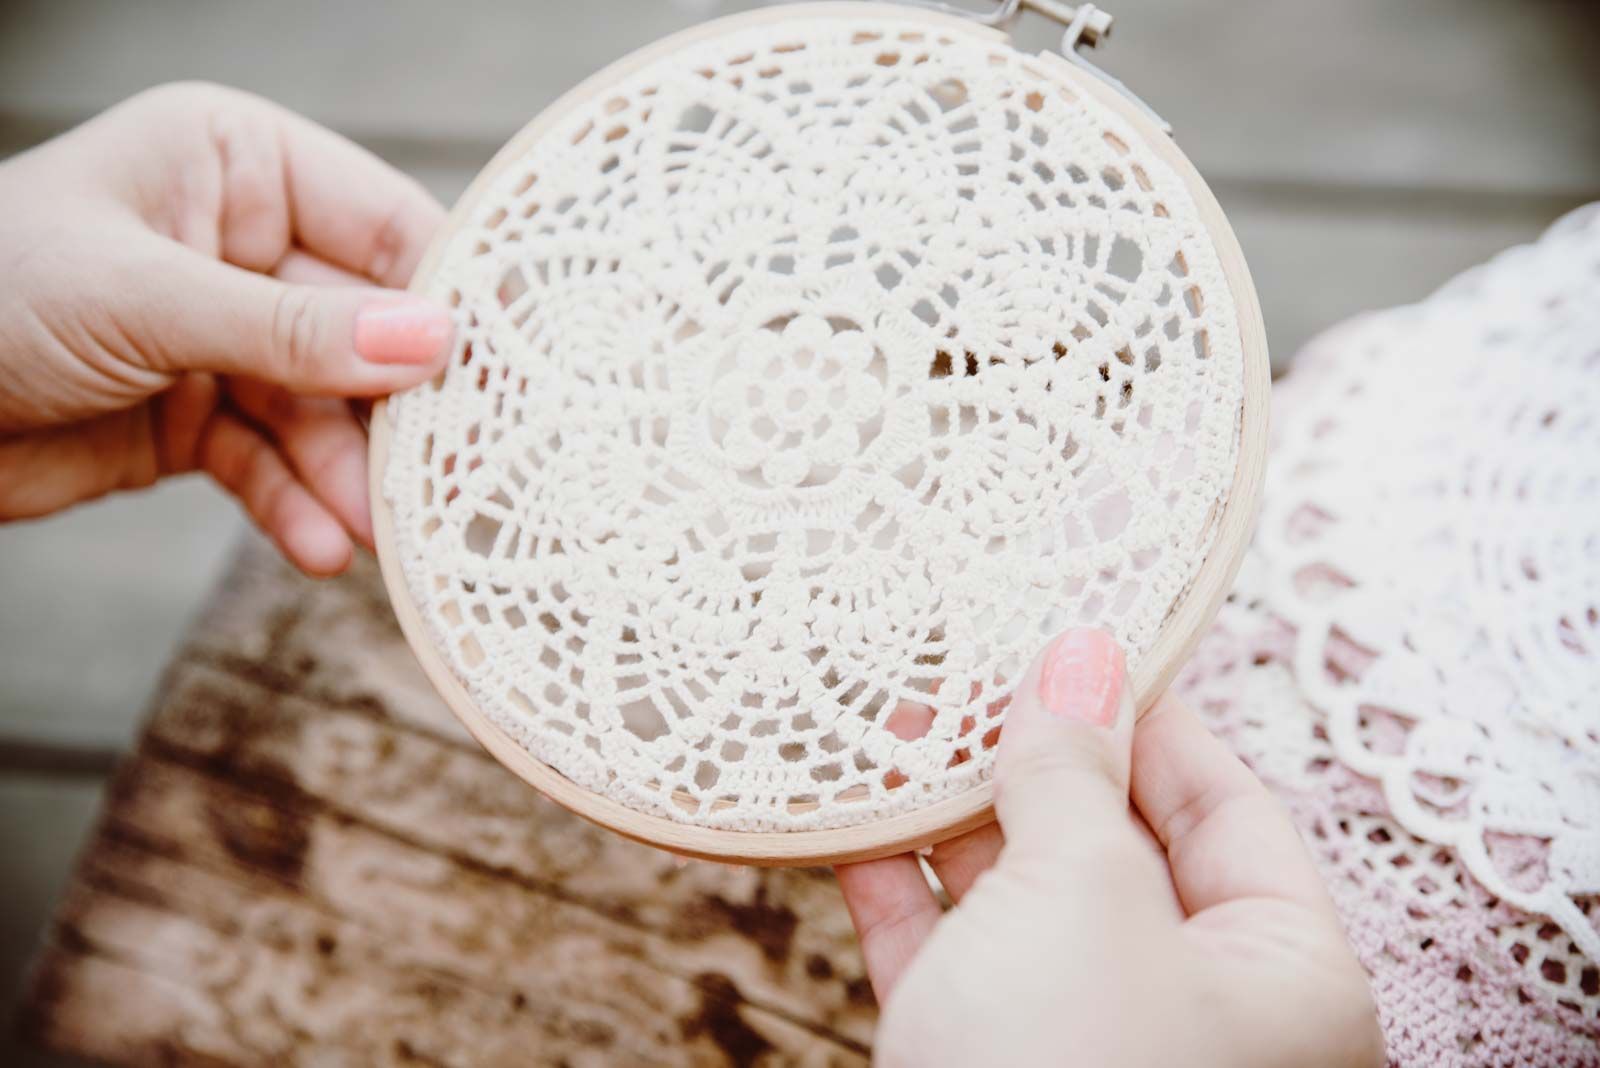 DIY-Dreamcatcher-Boho-Wedding-Dekoration-Traumfaenger-Hochzeitsdekoration-40